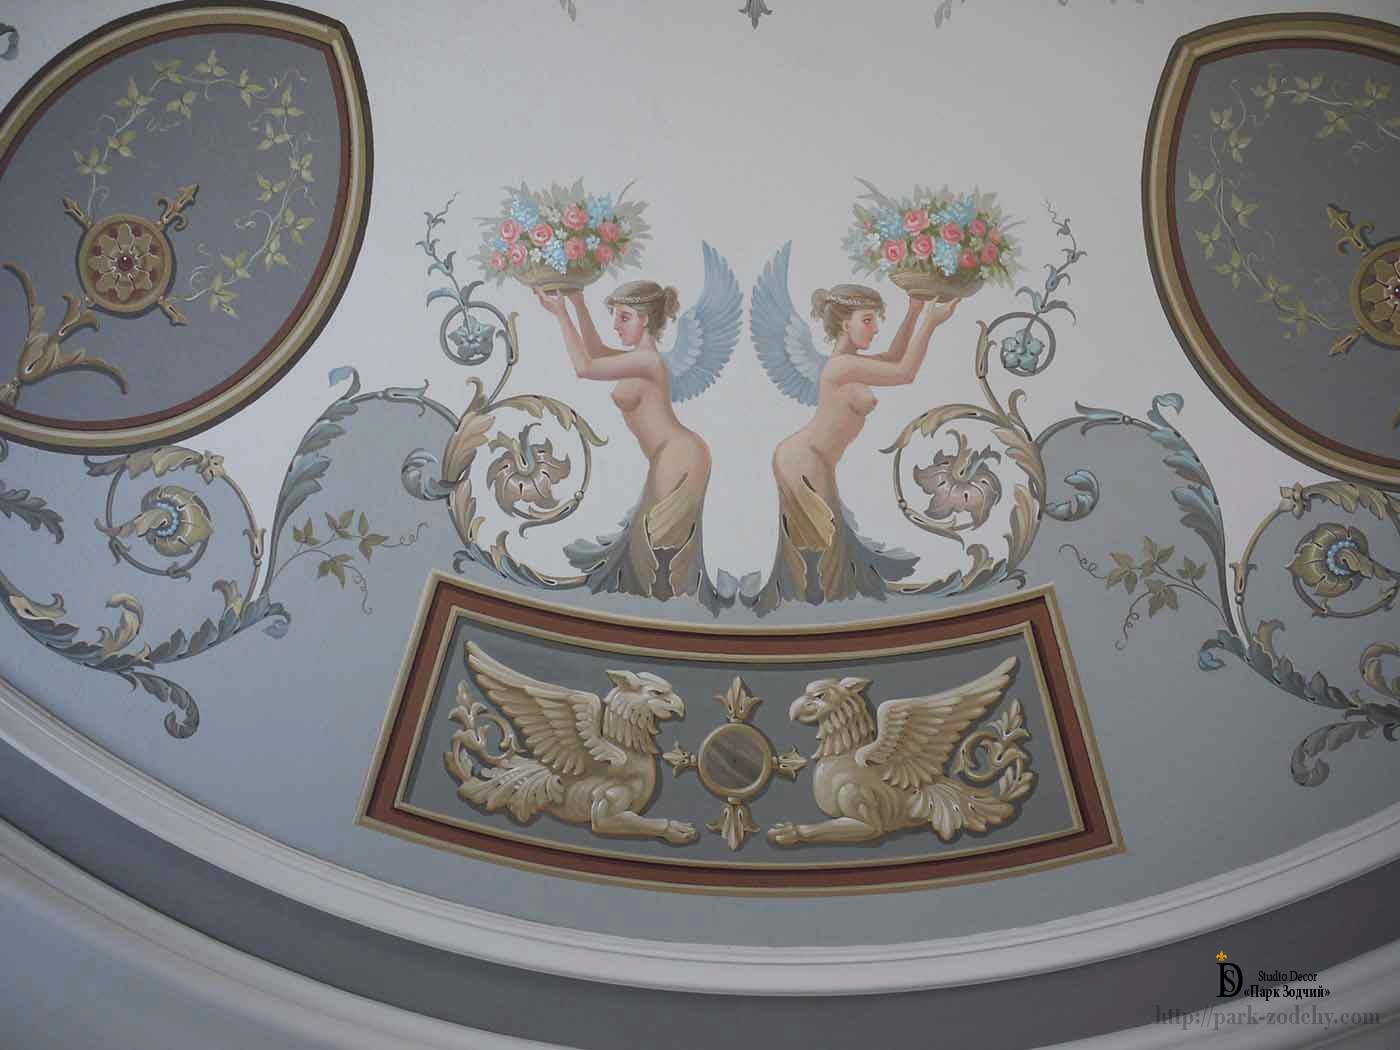 Painting the ceiling in the Empire style